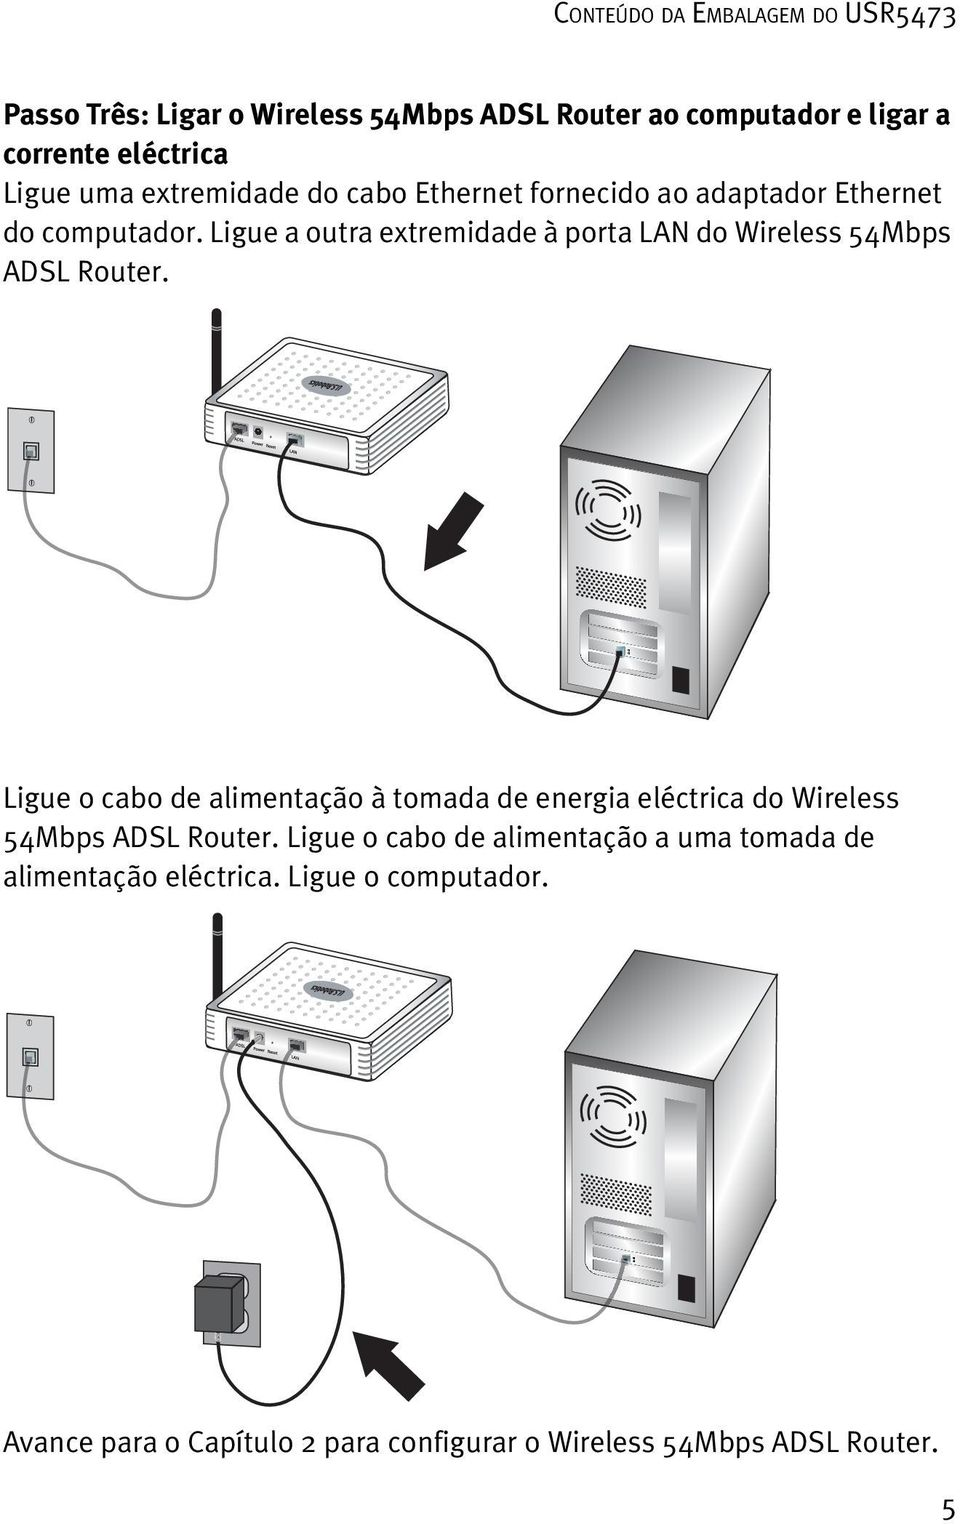 Ligue a outra extremidade à porta LAN do Wireless 54Mbps ADSL Router.